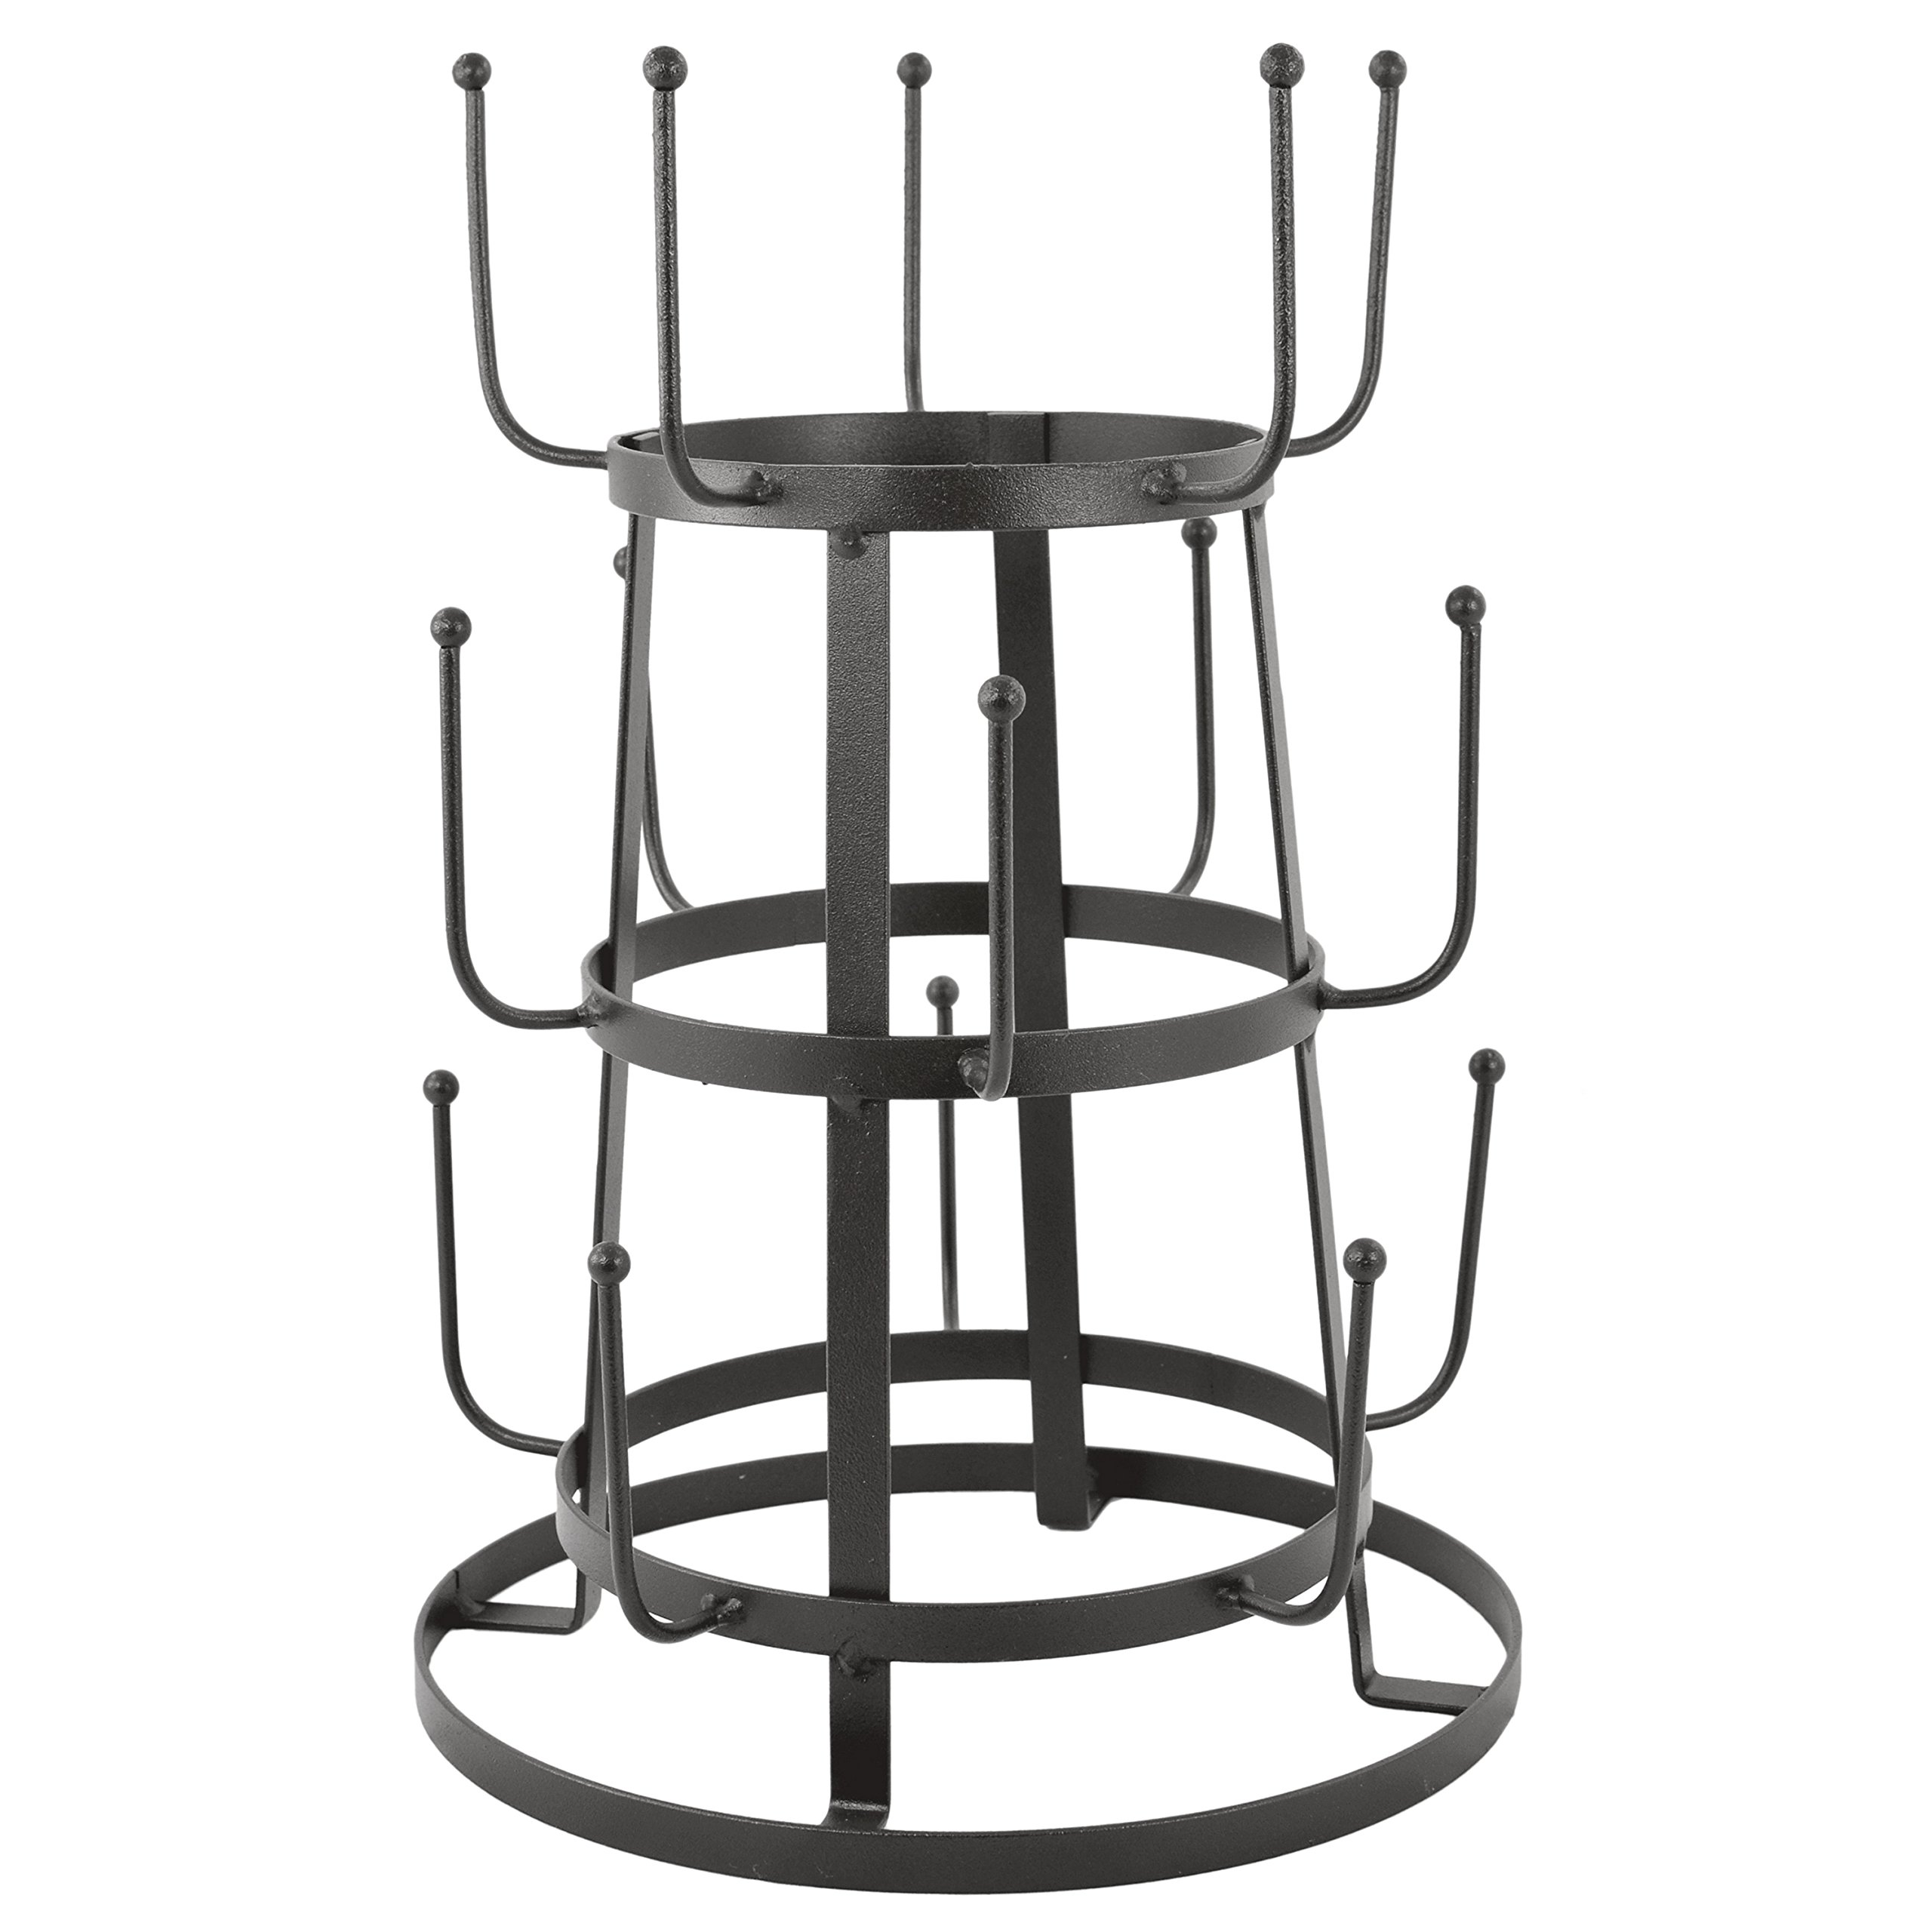 MyGift Vintage Rustic Gray Iron Mug/Cup/Glass Bottle Organizer Tree Drying Rack Stand by MyGift